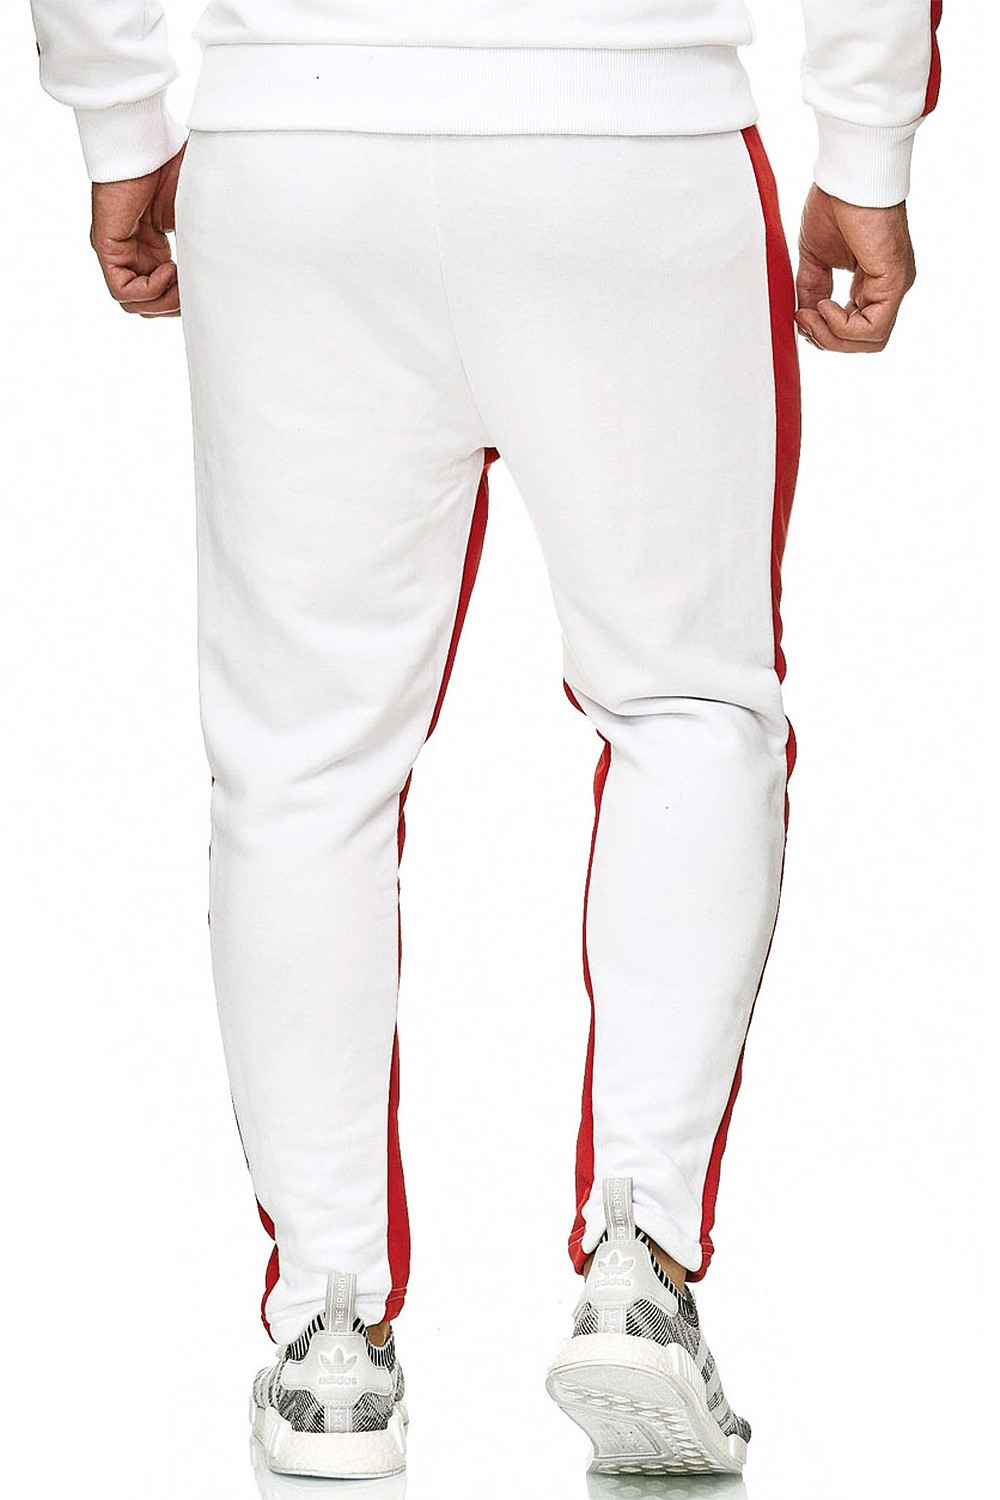 Redbridge-senores-regular-fit-chandal-fitness-sueter-aerobic-pantalones miniatura 24